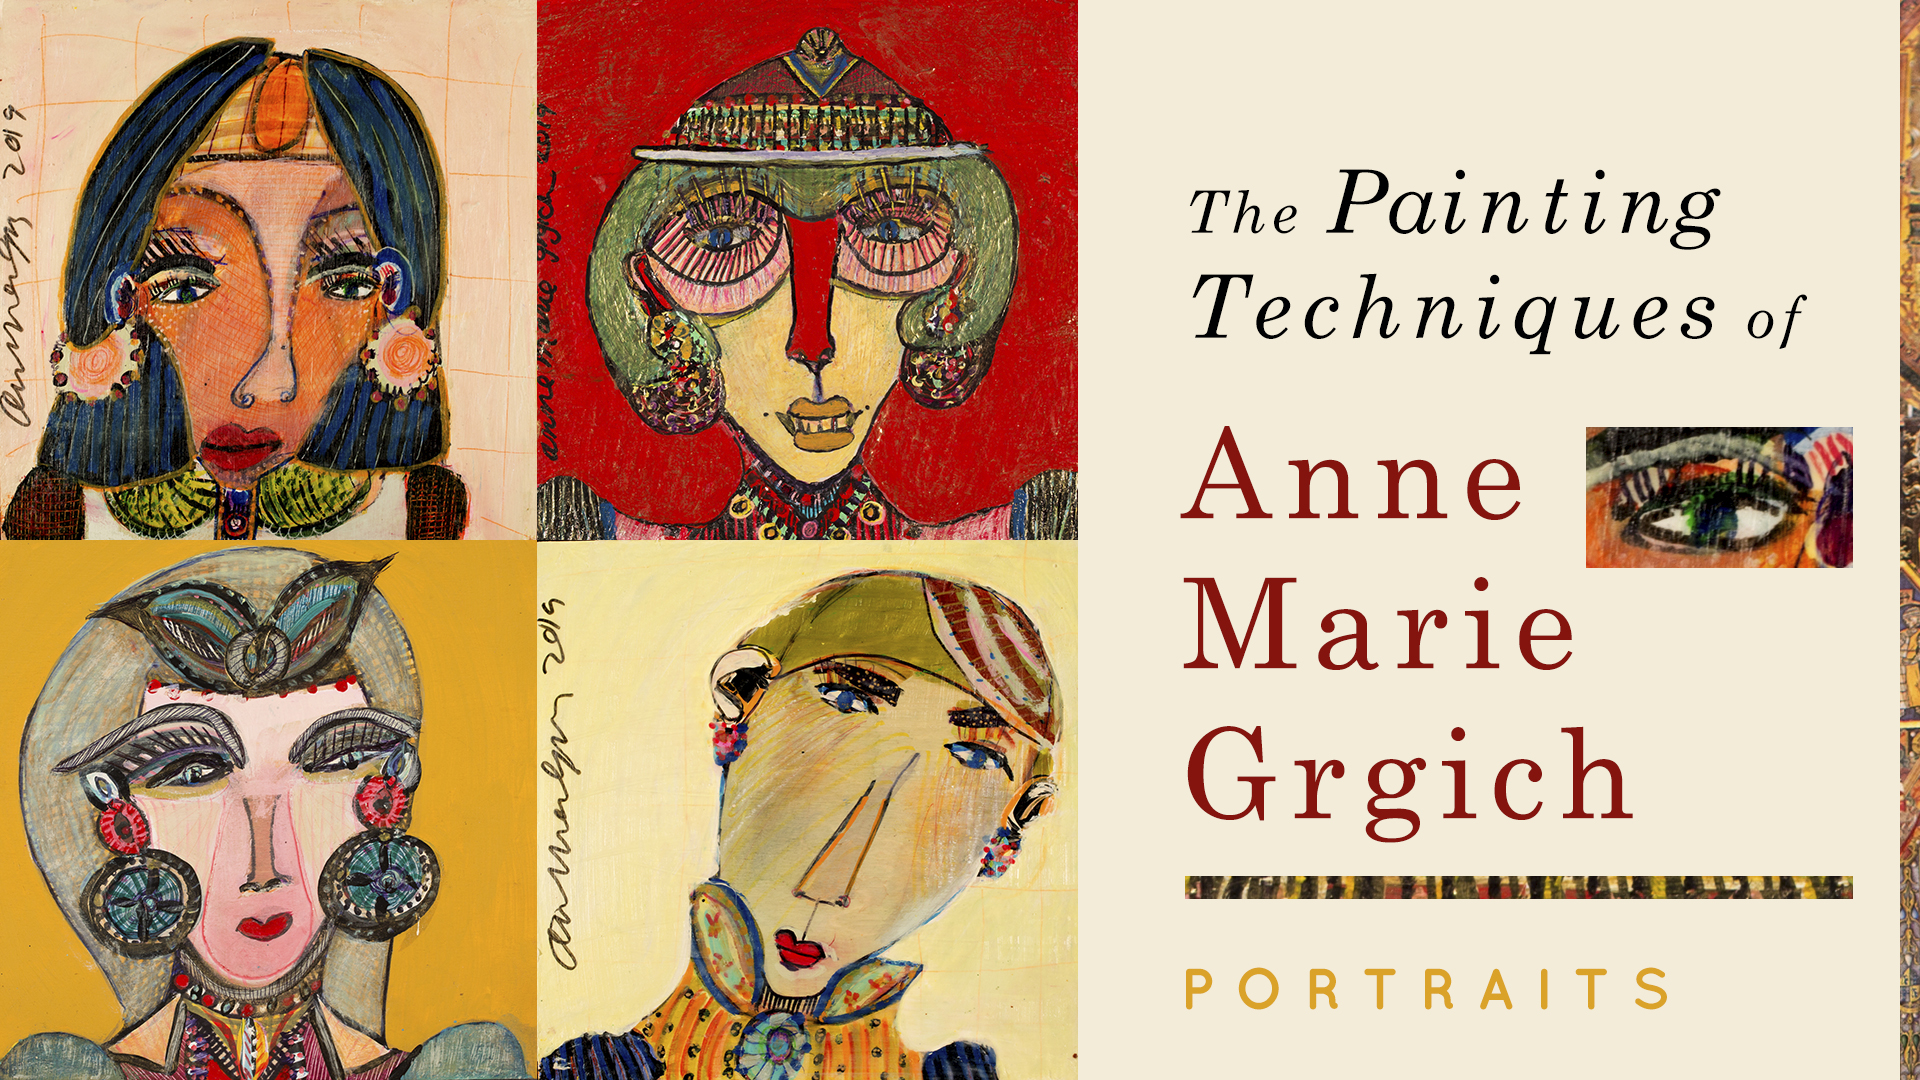 https://www.carlasonheim.com/online-classes/the-painting-techniques-of-anne-marie-grgich-portraits/